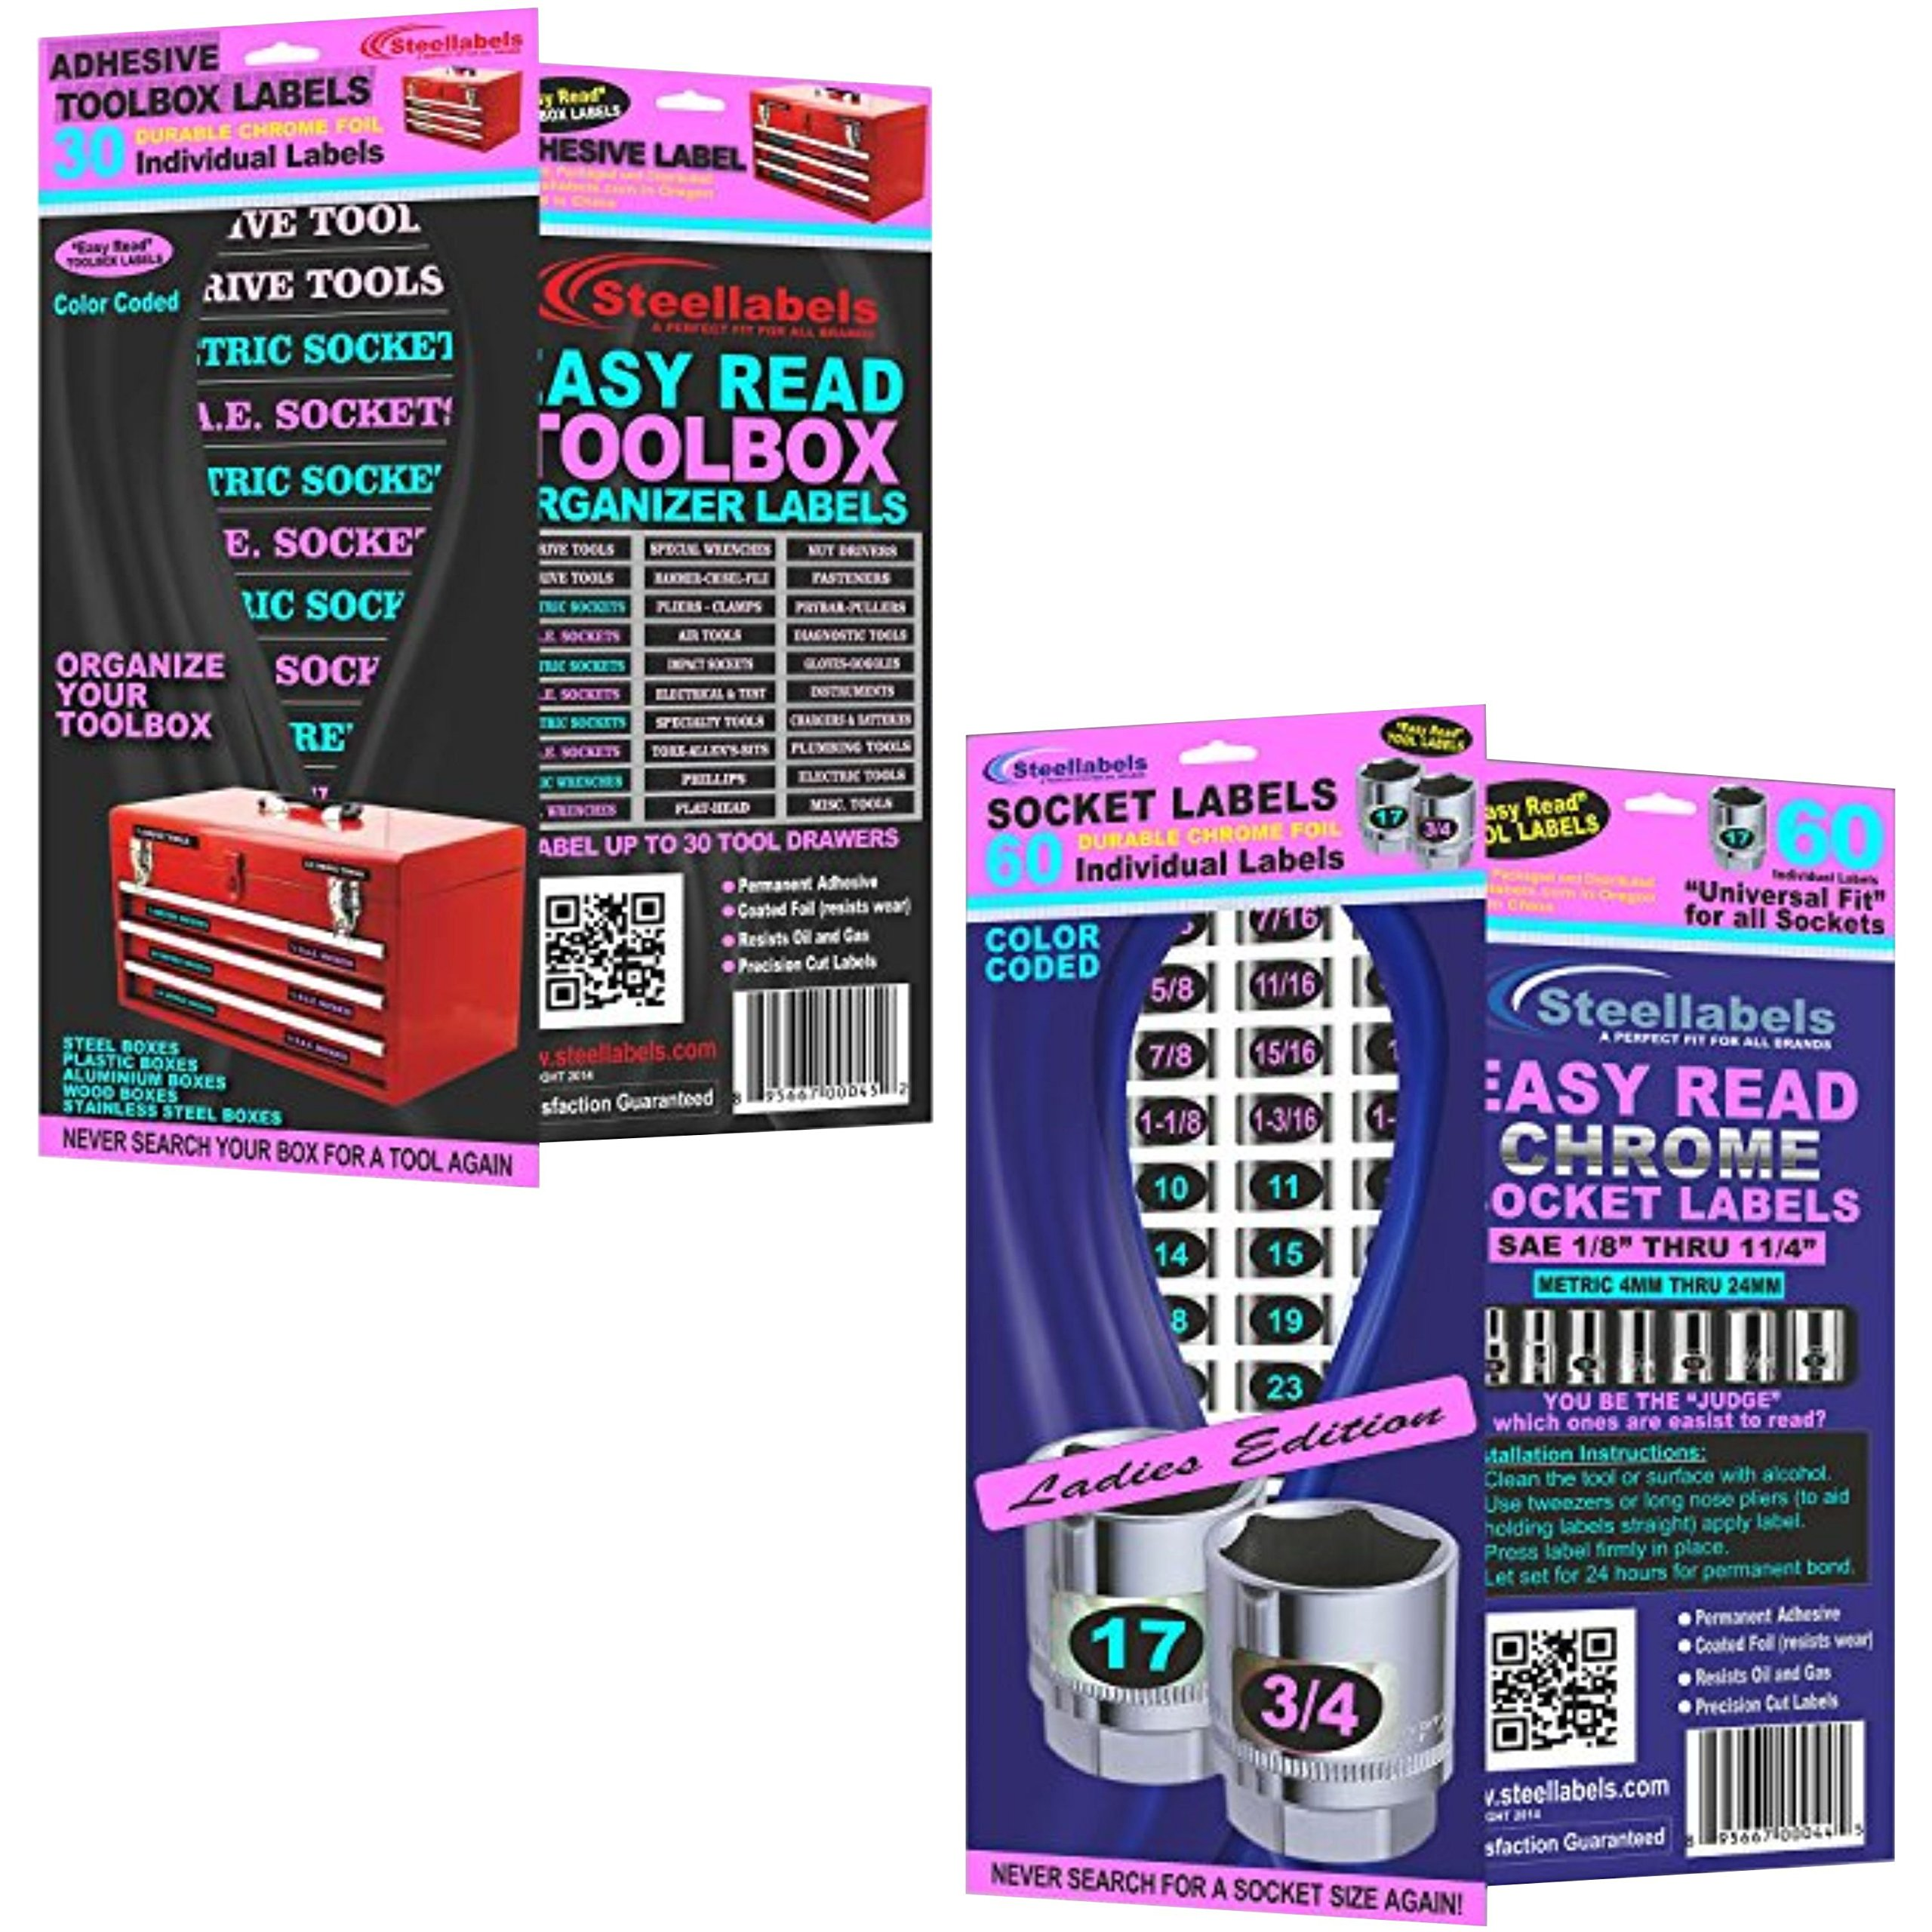 Steellabels -''Think Pink'' Ladies Combo Deal - 1 set of Craft Drawer Labels, 1 set Adhesive Toolbox Labels, 2 sets of Chrome Foil Socket Labels and 2 sets of Assembly Labels,''makes a perfect gift''